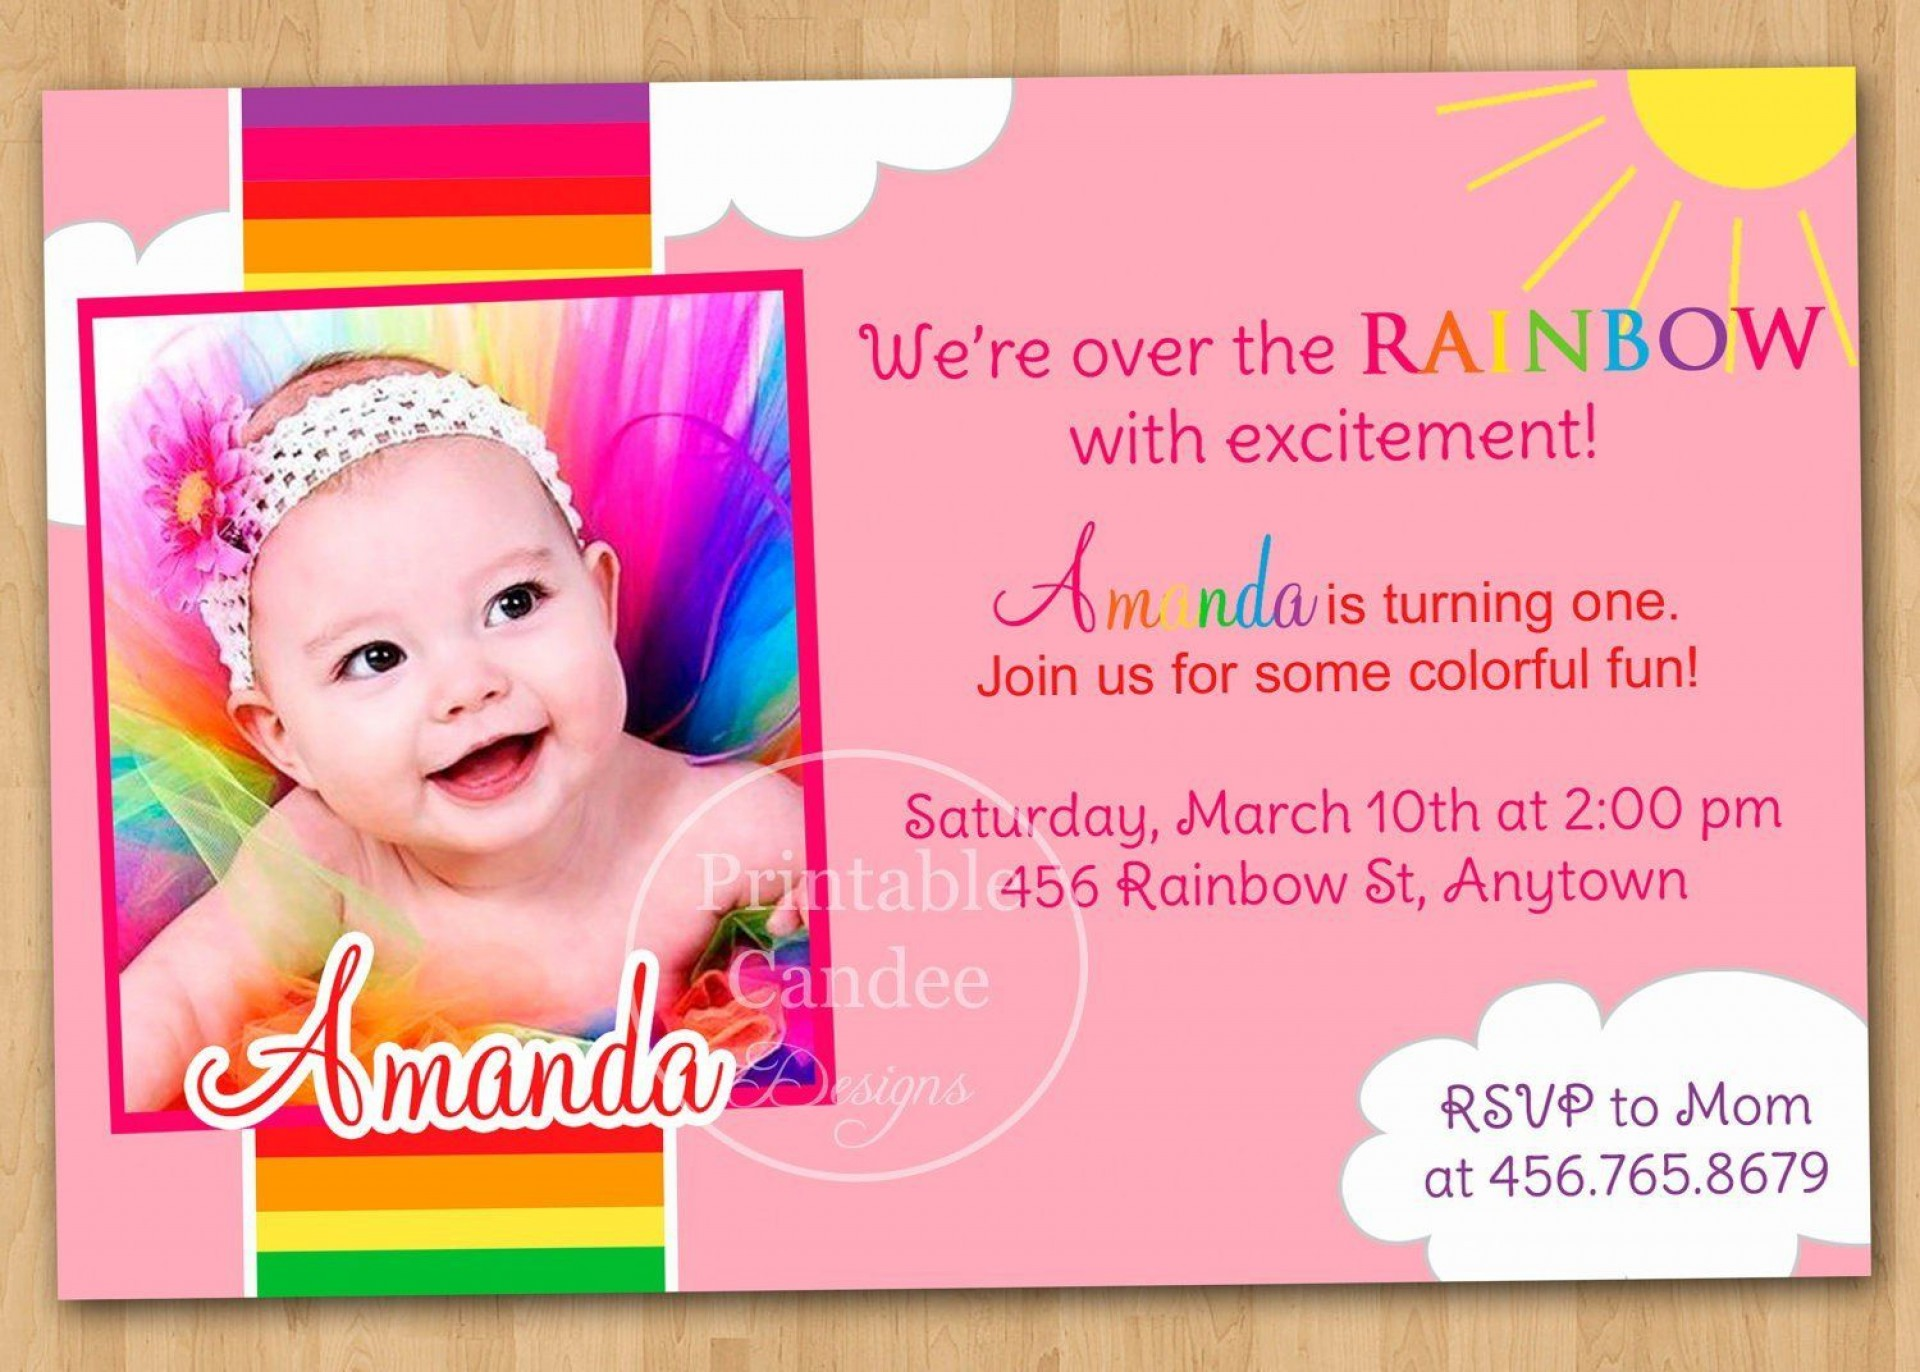 008 Incredible Free Online Birthday Invitation Card Maker With Photo Idea  1st1920